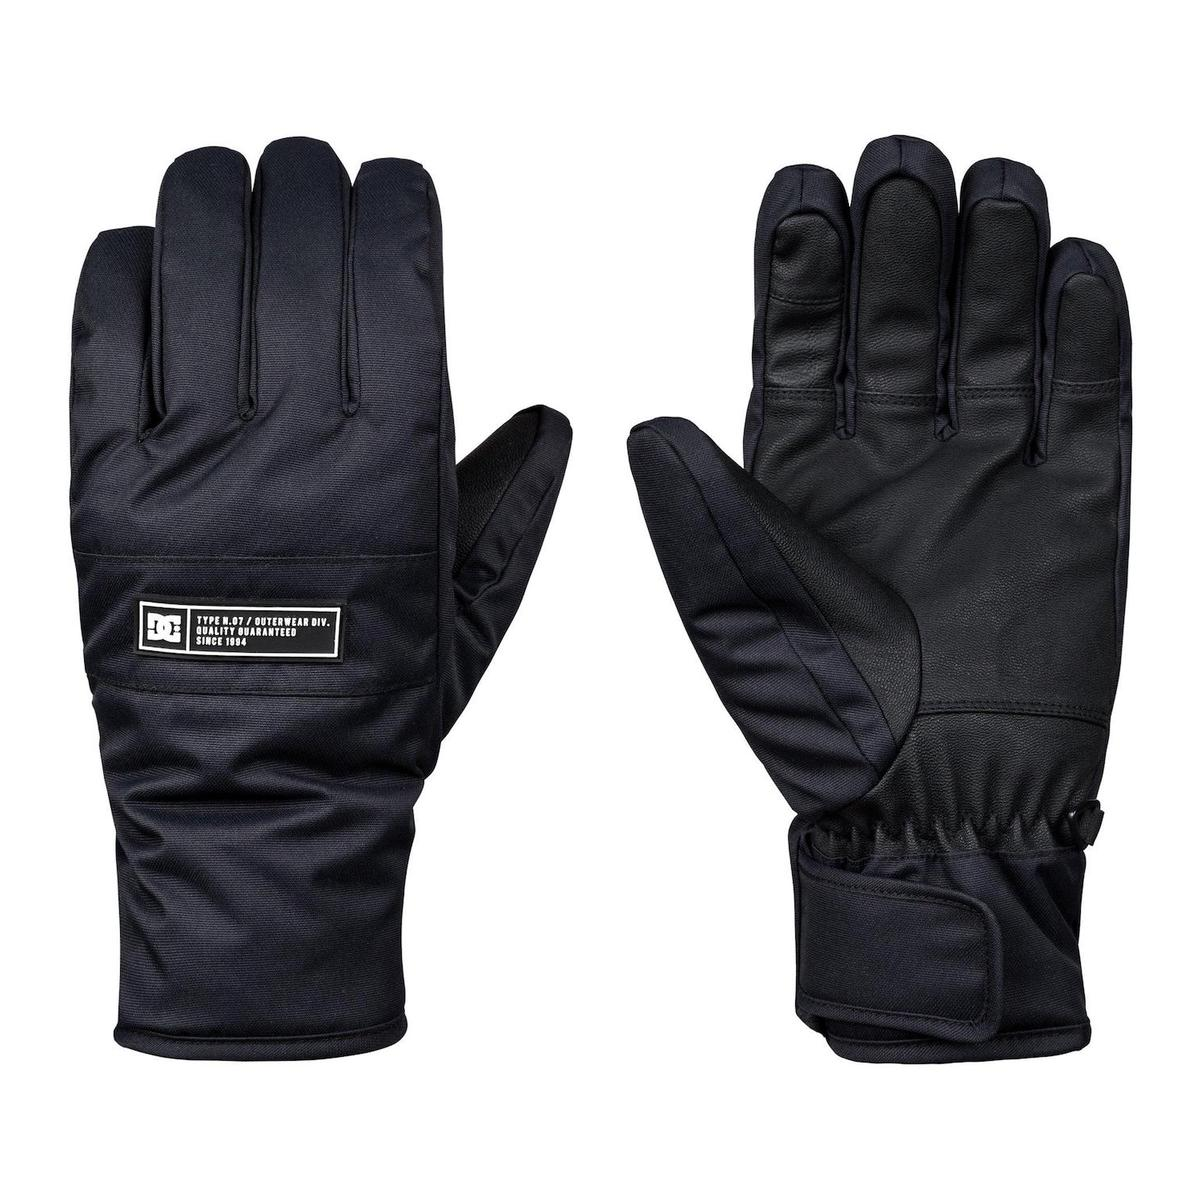 DC Franchise Glove Men's